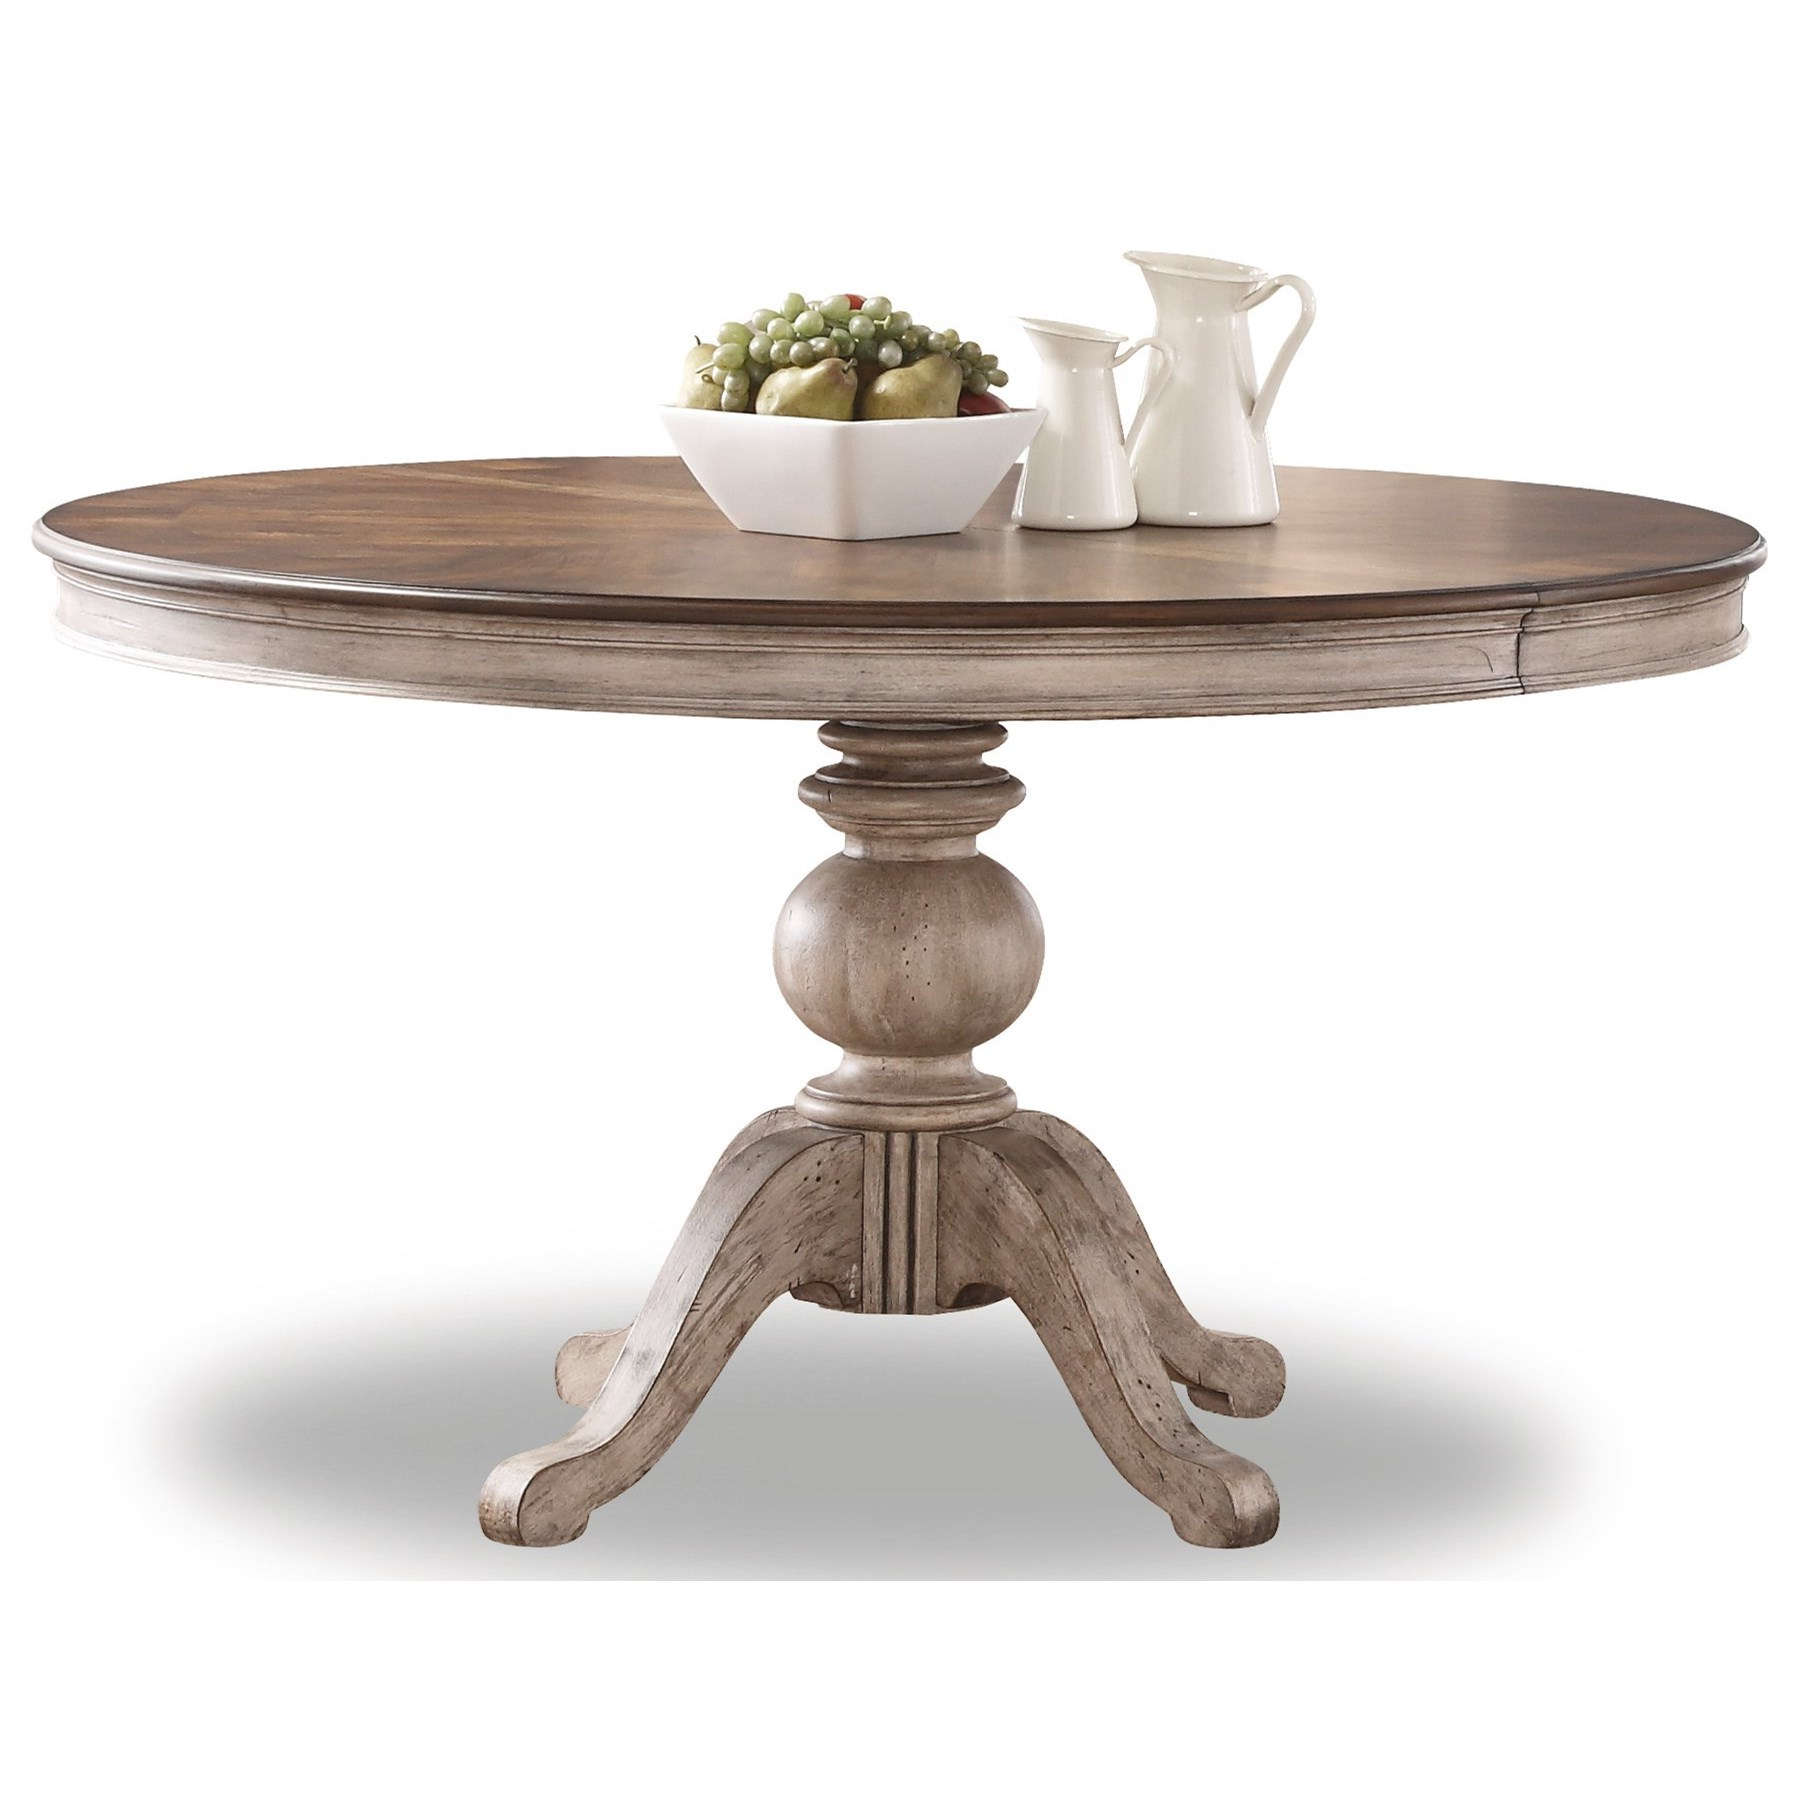 Plymouth Pedestal Dining Table In Most Up To Date Johnson Round Pedestal Dining Tables (View 6 of 25)